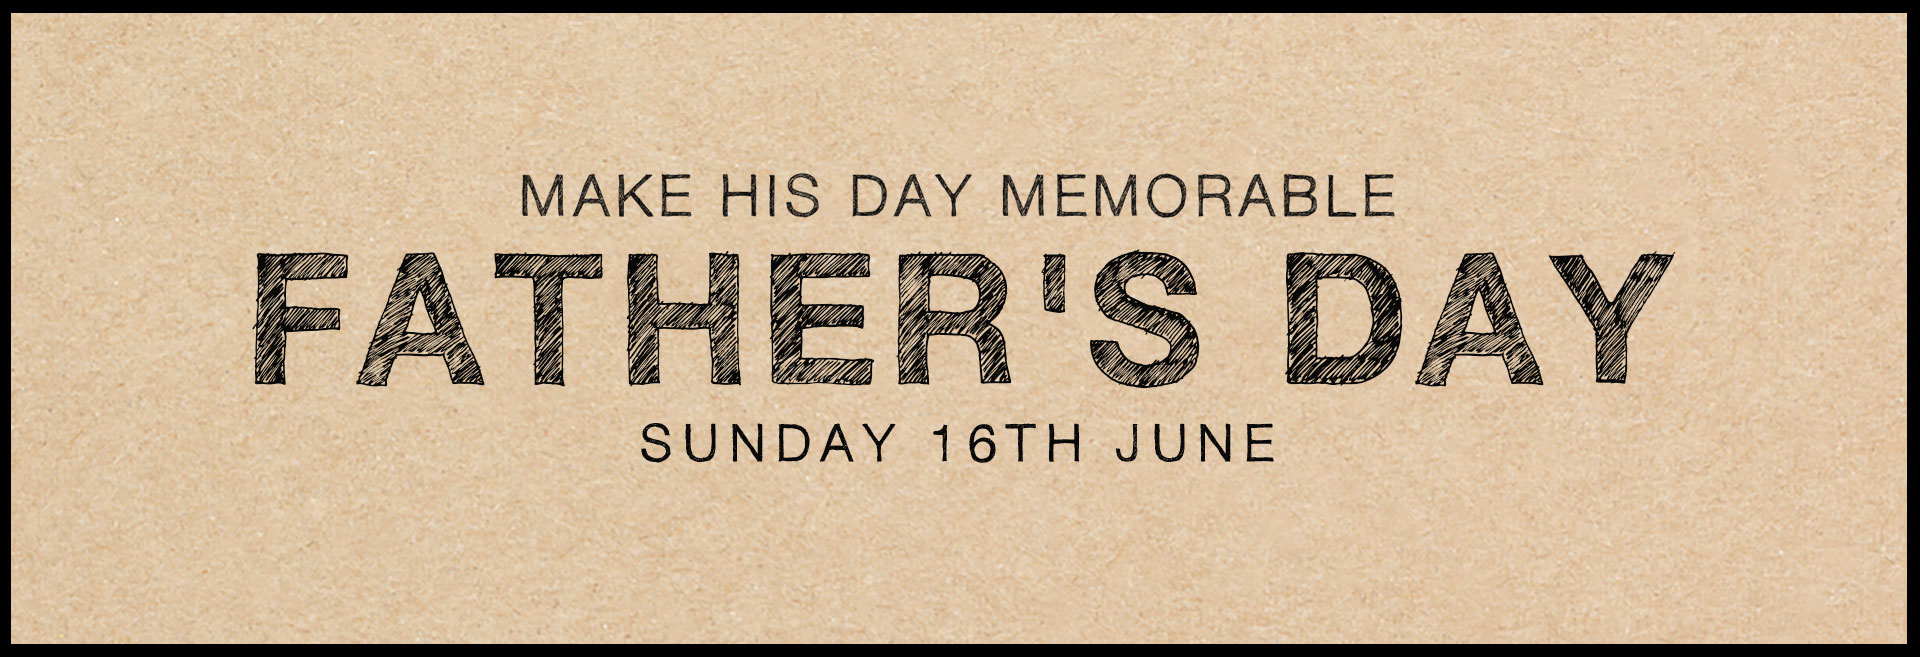 Father's Day at The Royal Standard